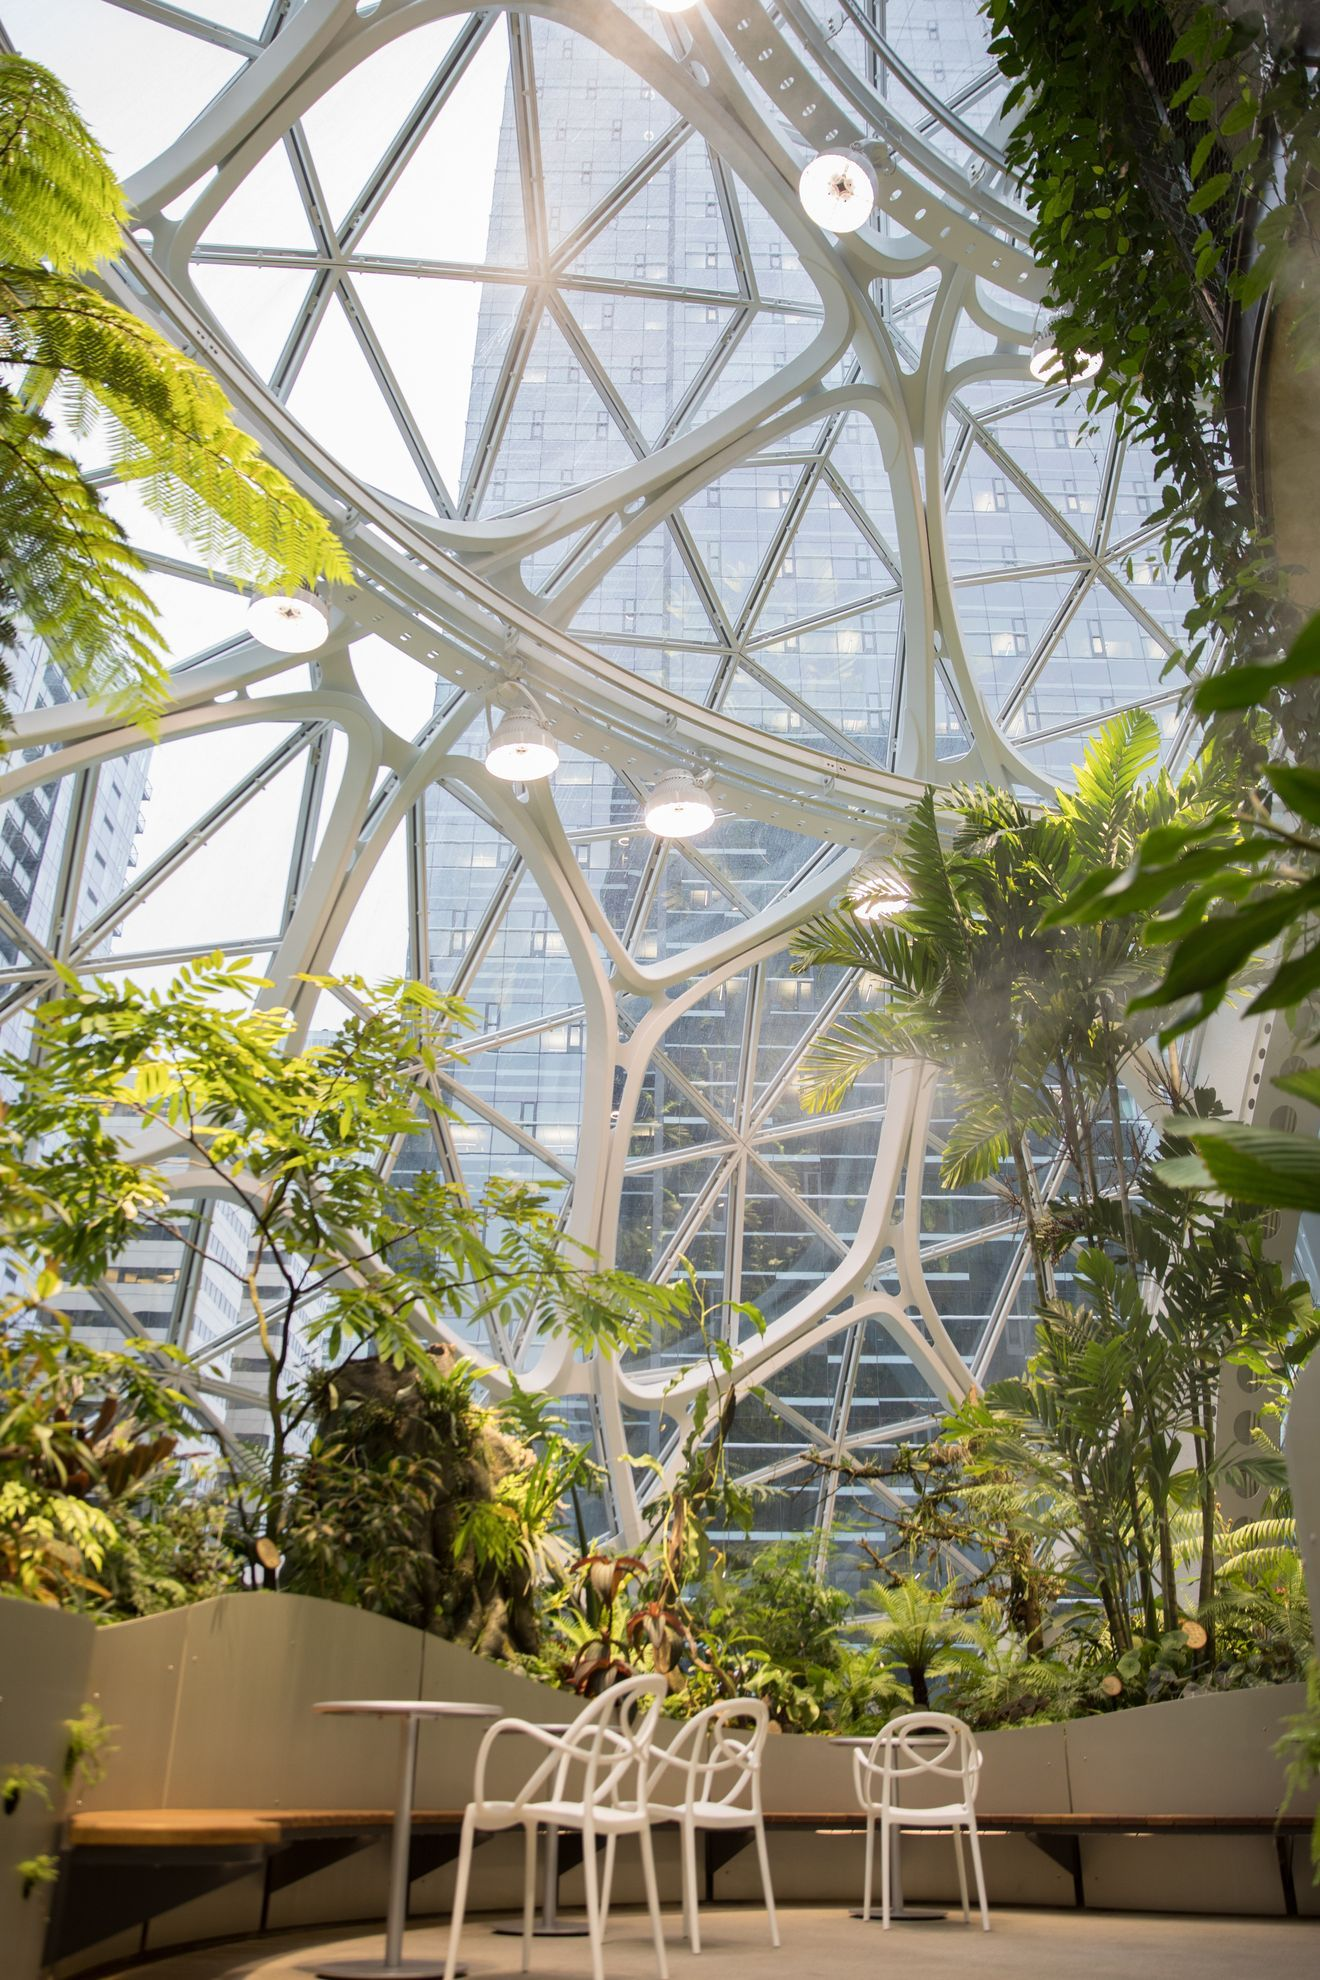 Inside the Amazon Spheres: The plants, the architecture, and a transforming city